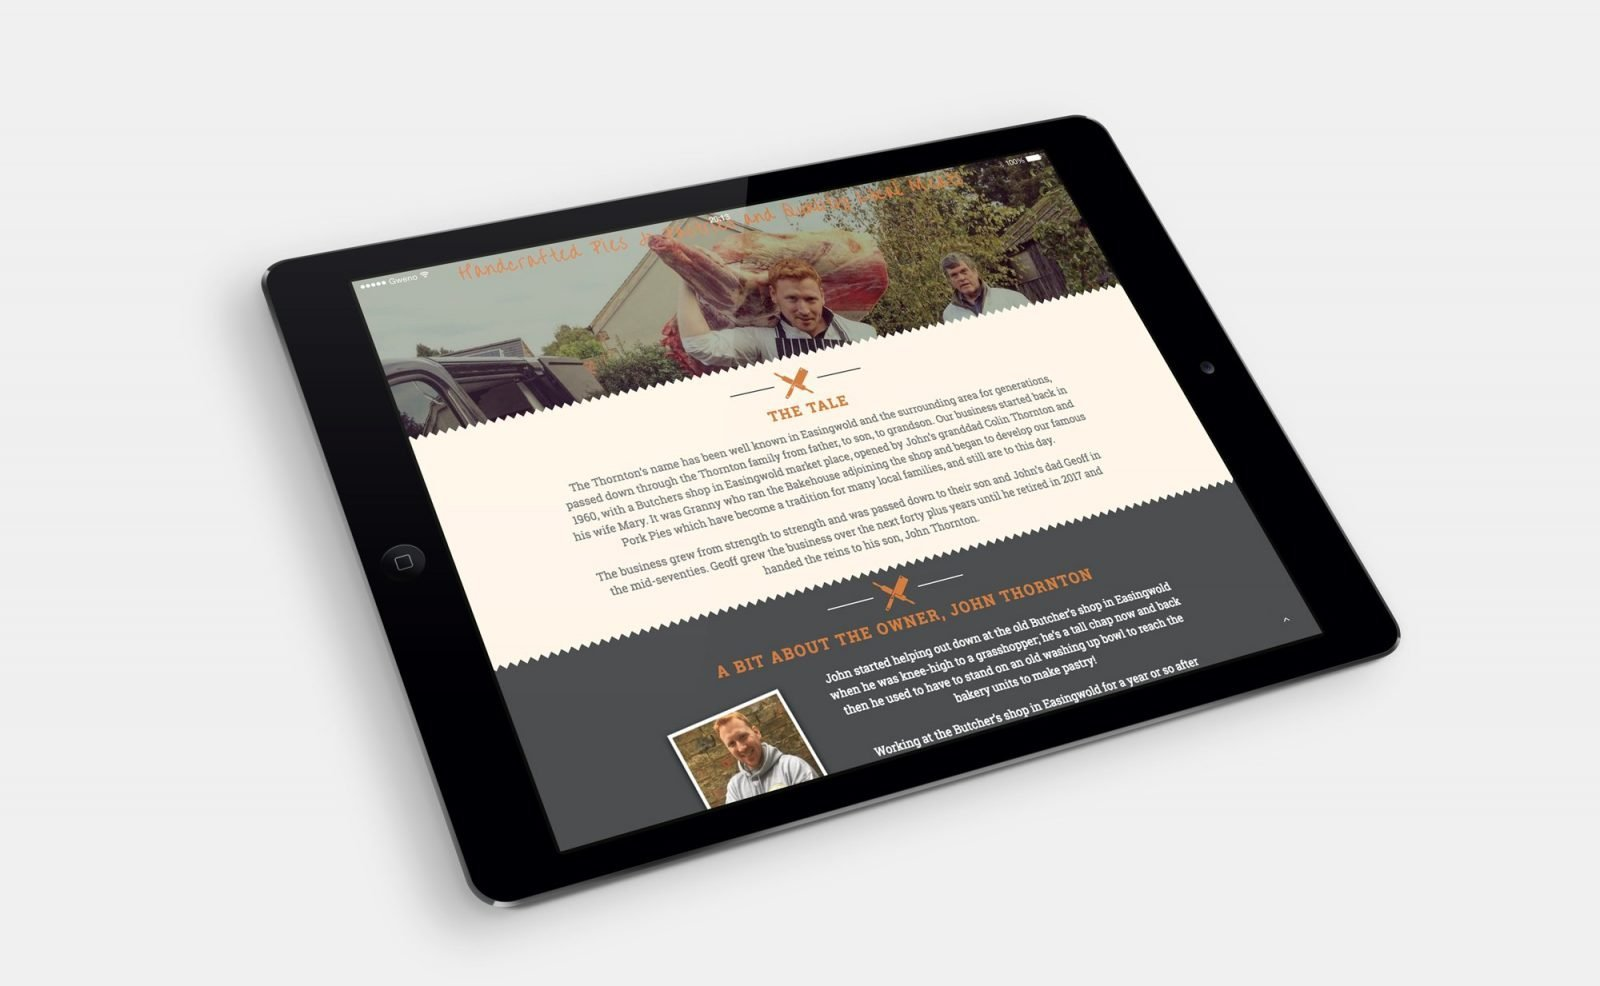 An ipad showing the home page for Thornton's Butchers and Bakehouse website design